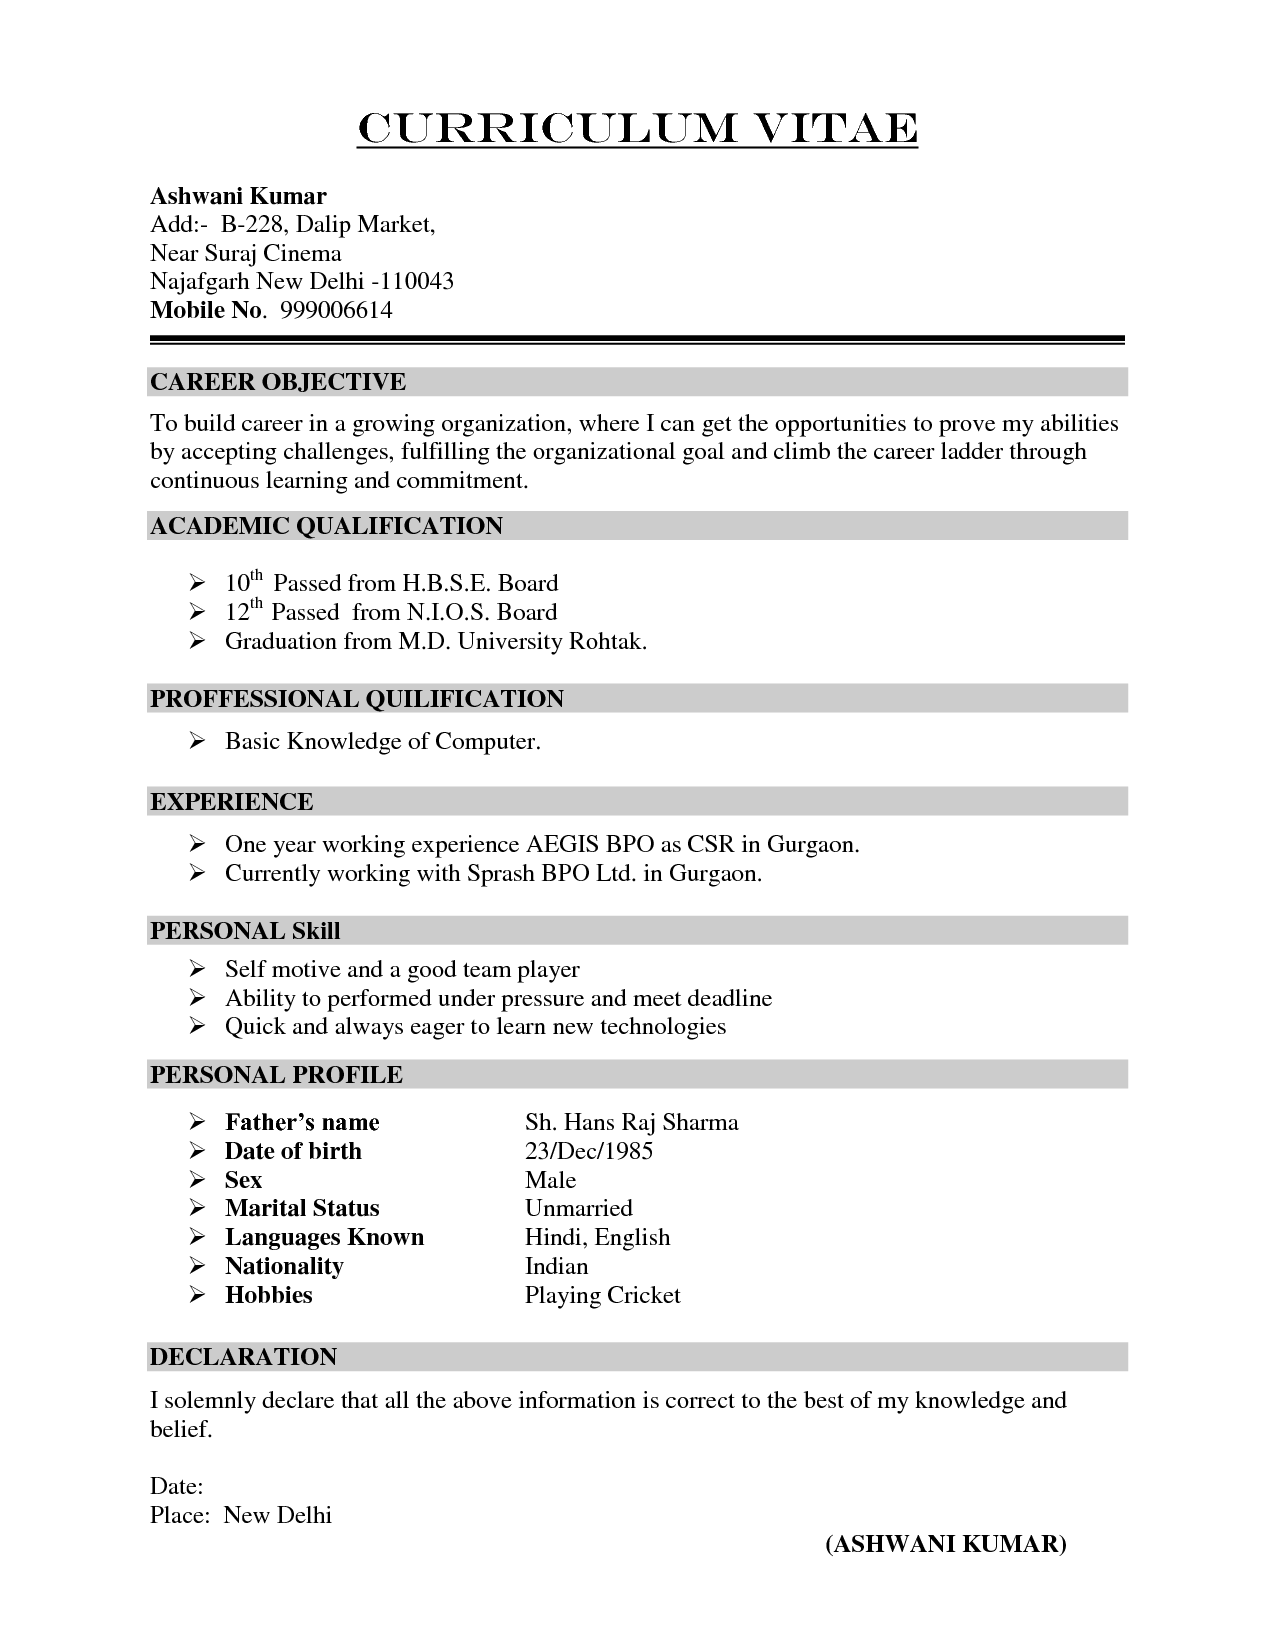 writing a good resume profile resume samples writing writing a good resume profile how to write a great resume profile worklifegroup resume cv example